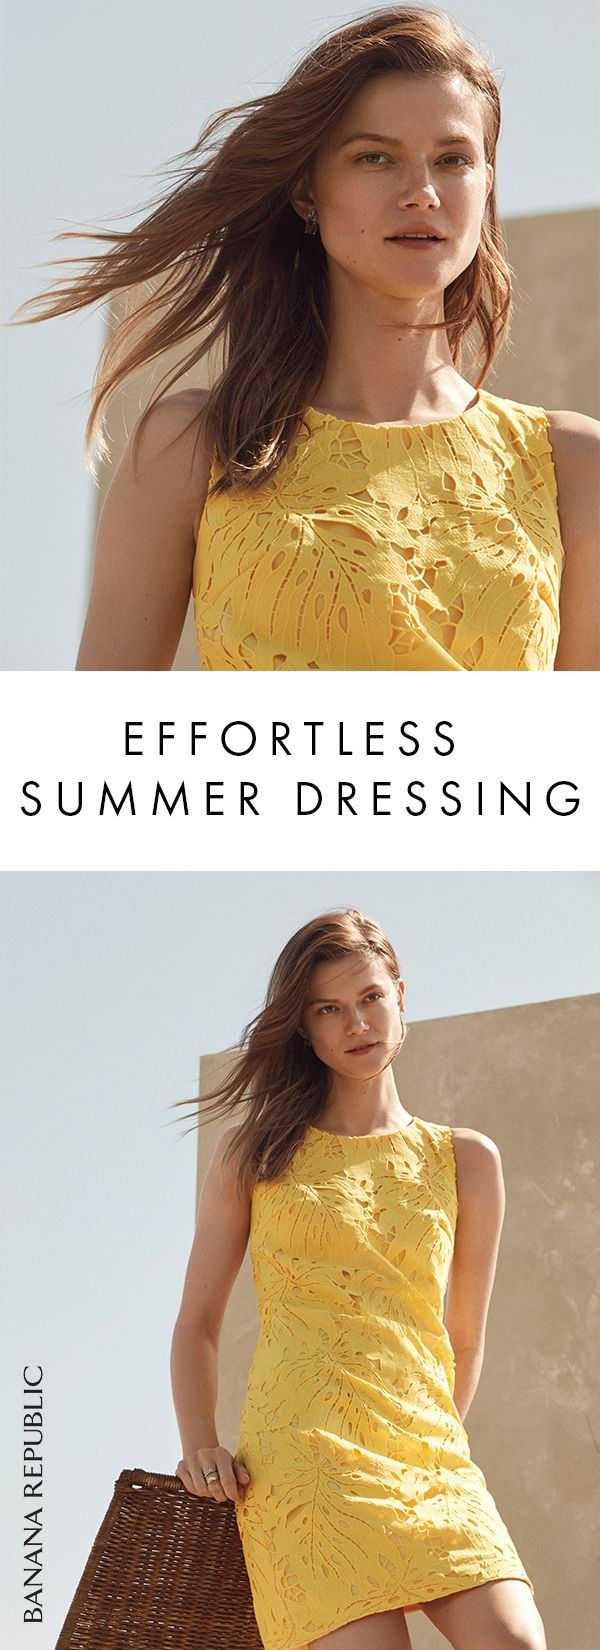 The shift dress is a versatile summer classic, and it gets a feminine reworking with a bright yellow color and delicate leaf lace overlay. Wear with flats or chic strappy sandals. Shop now at Banana Republic.